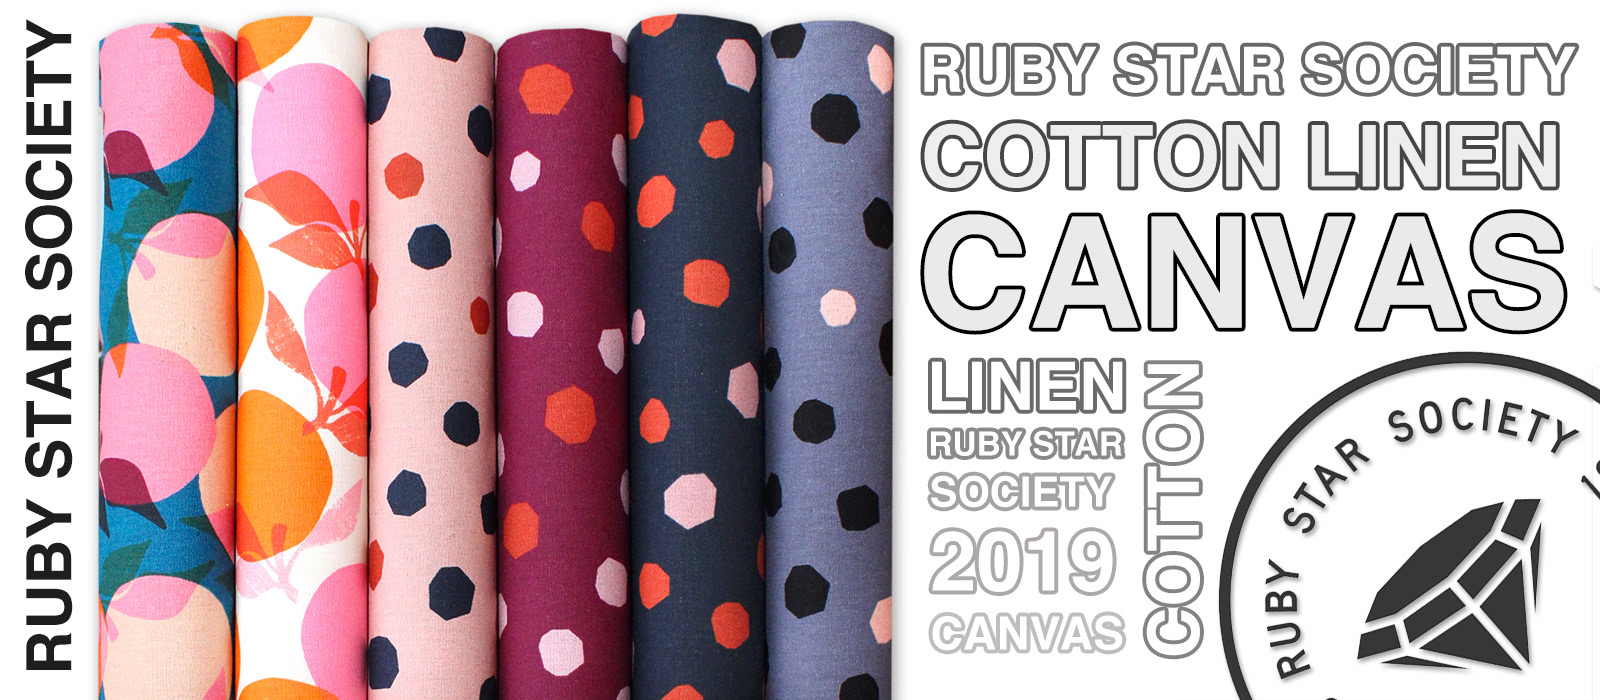 Ruby Star Society Cotton Linen Canvas 2019 Collection